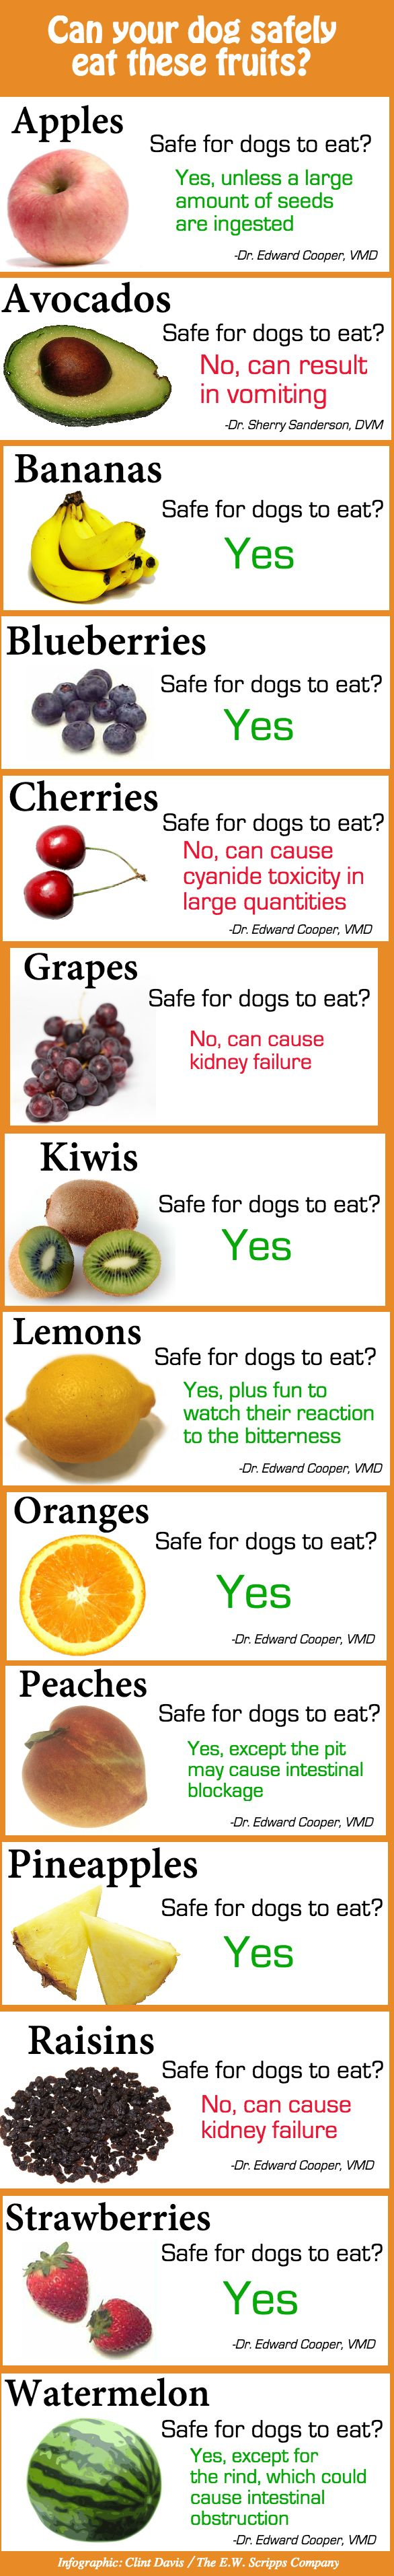 Just So You Know – All The Fruits Safe To Share With Your Dog, In One Chart